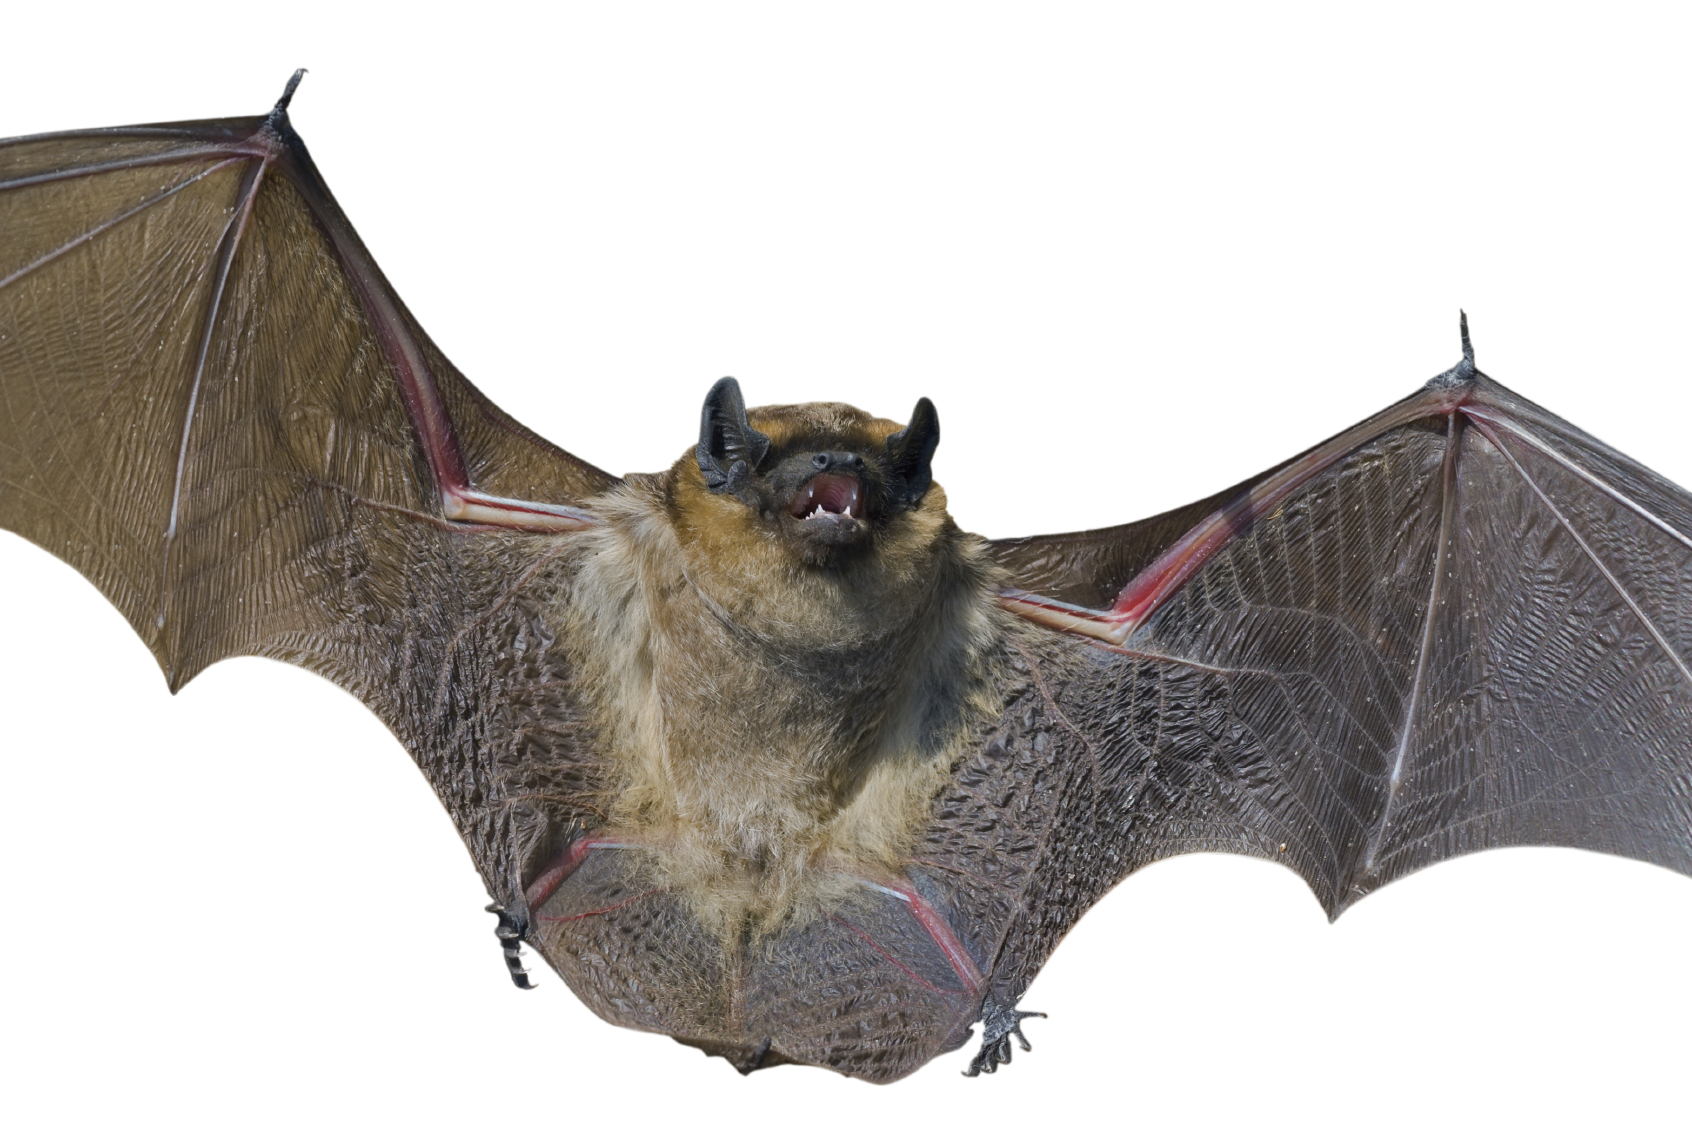 Bat Bus 12 >> 8 need rabies shots after child brings bat to school in ...